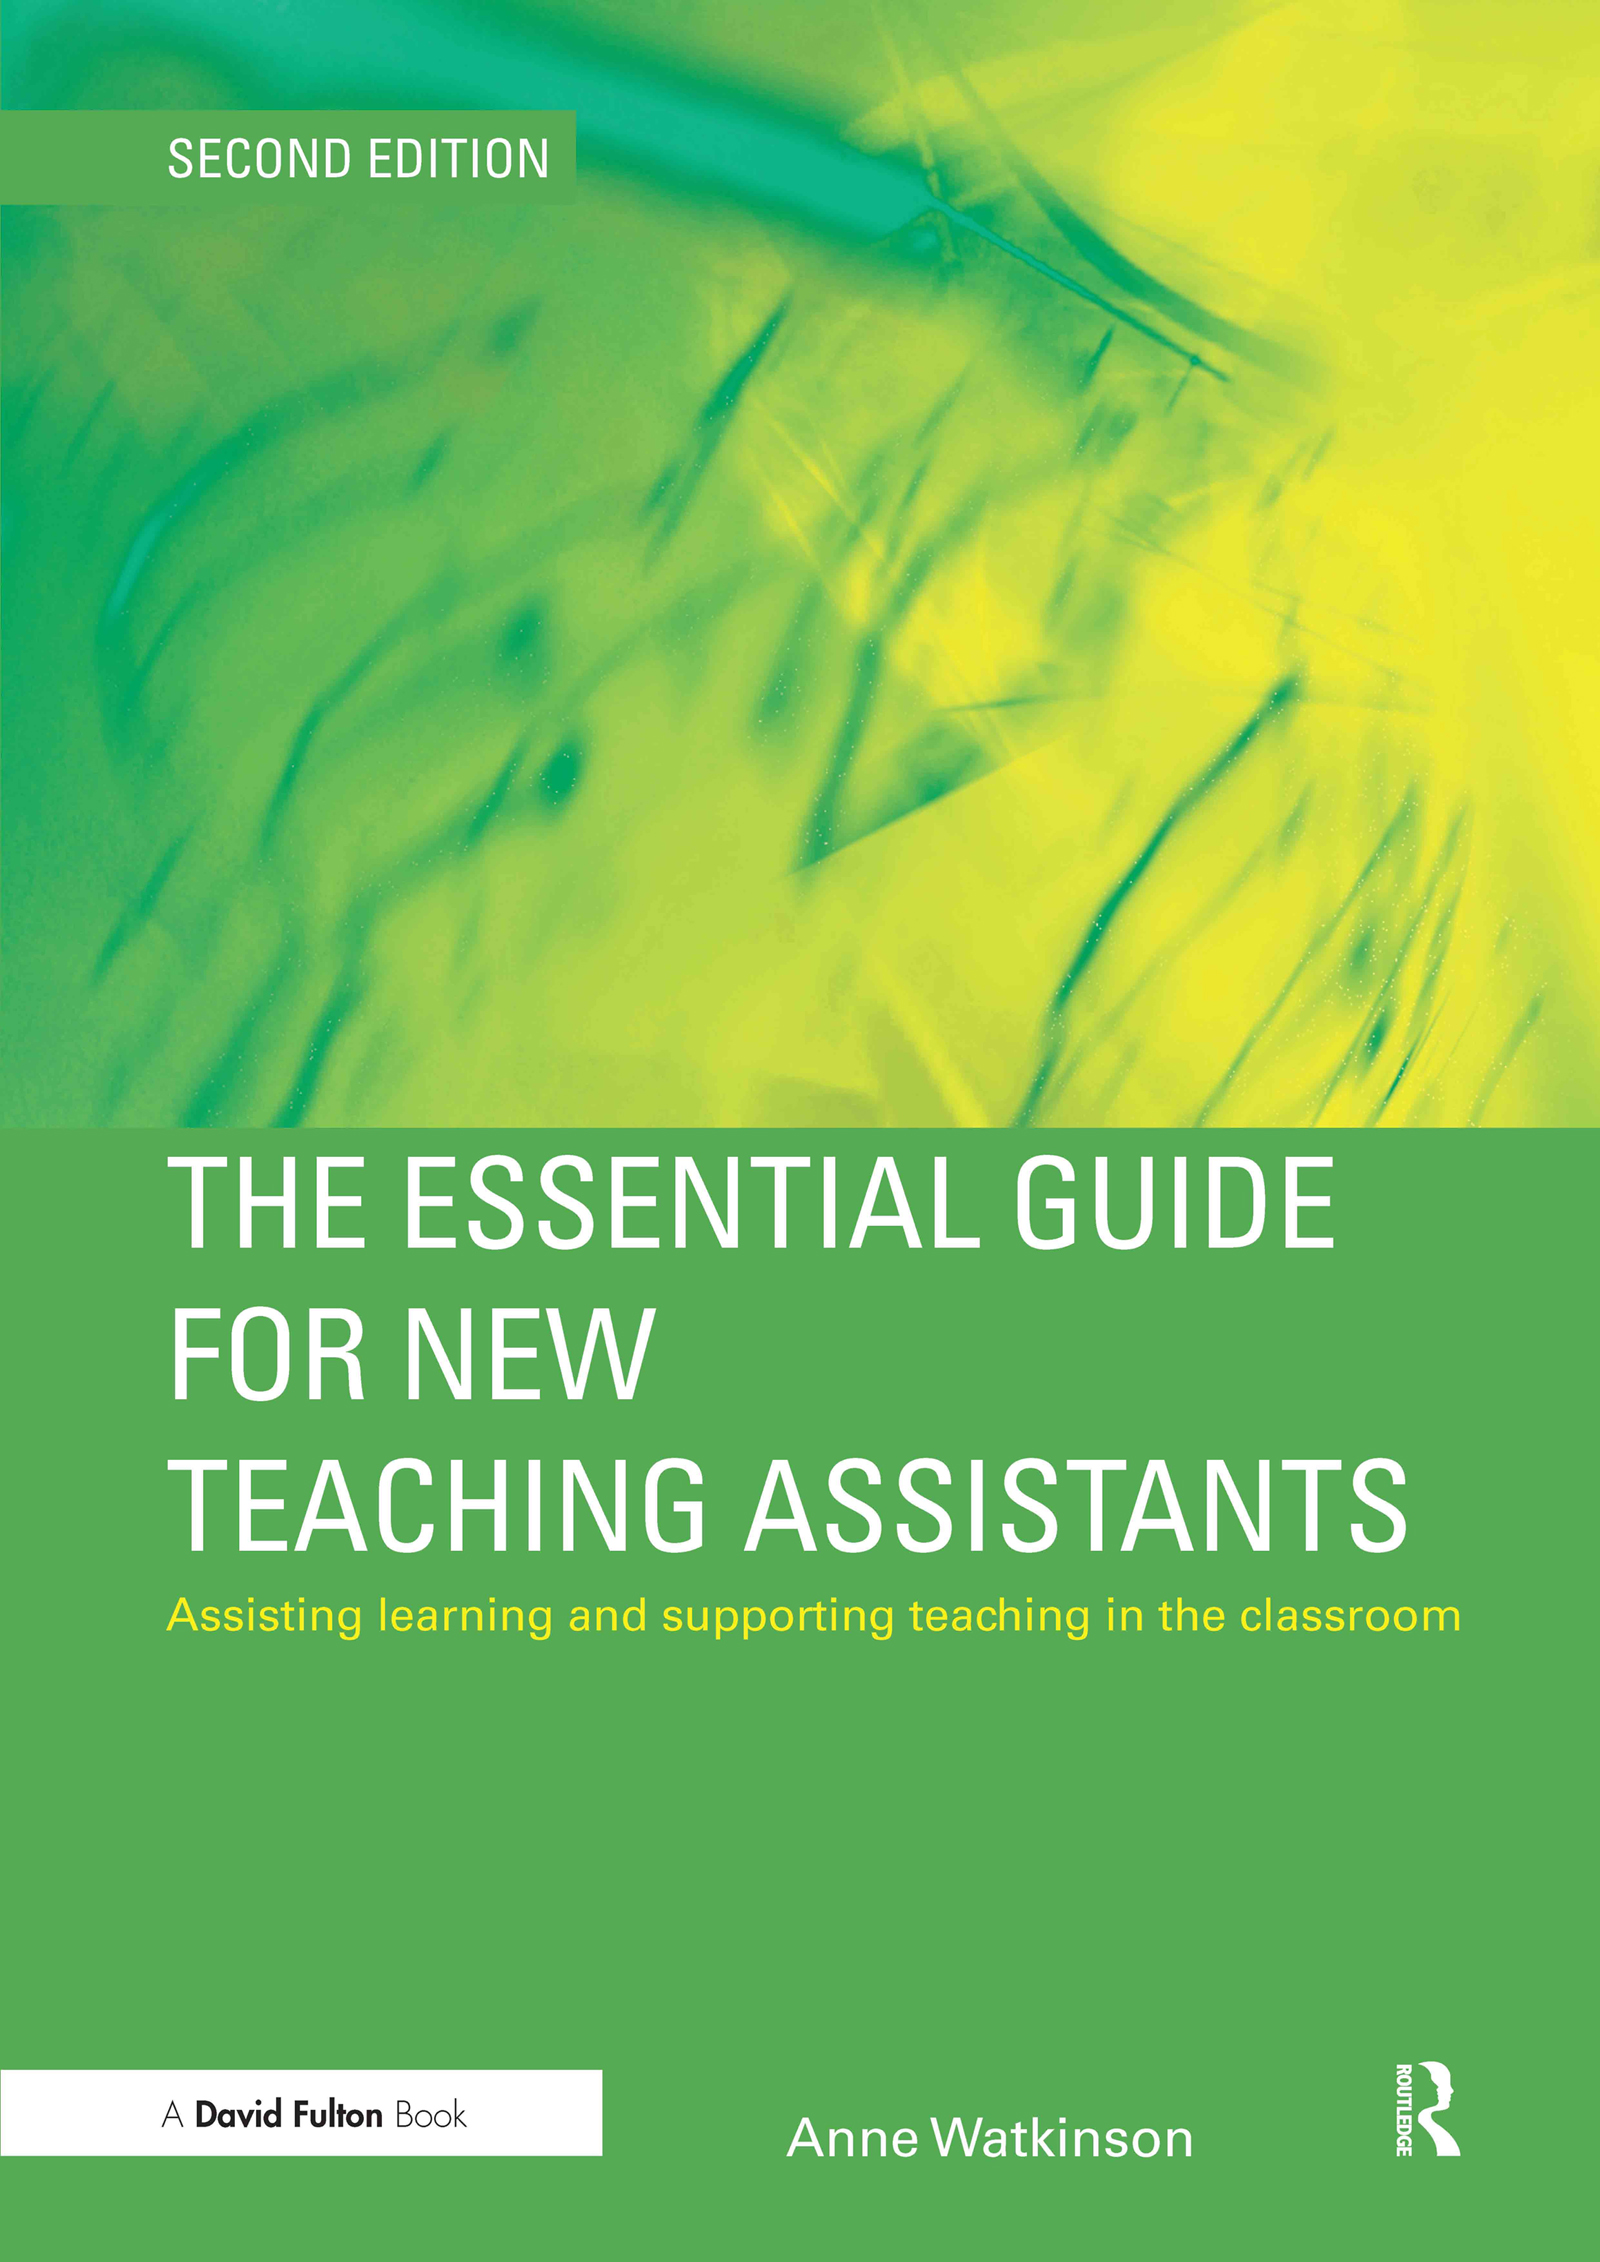 The Essential Guide for New Teaching Assistants: Assisting Learning and Supporting Teaching in the Classroom book cover